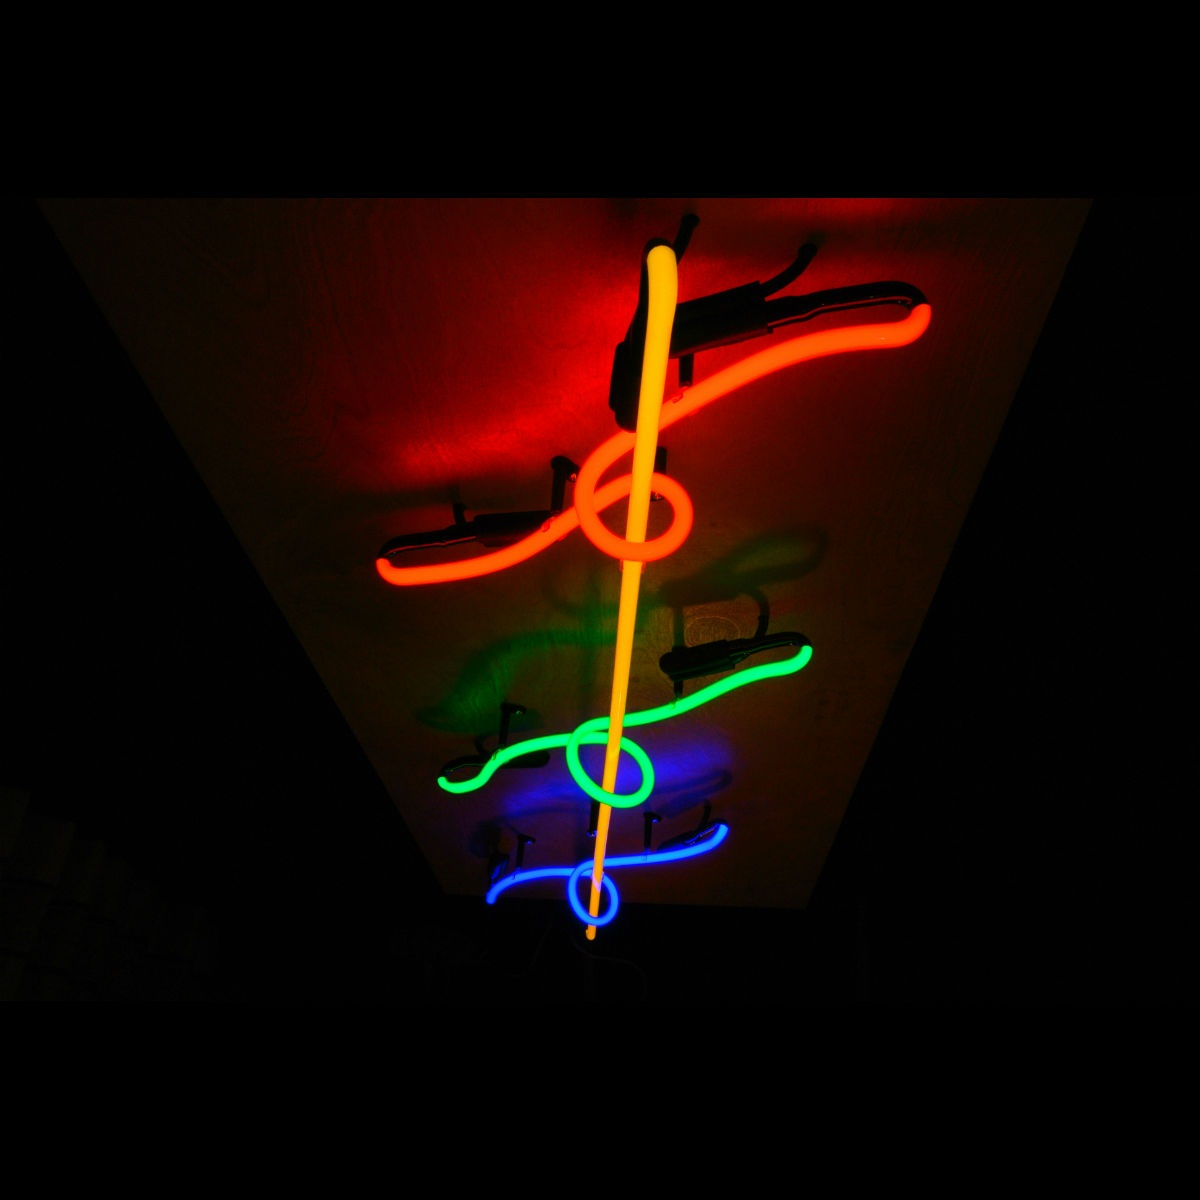 MAGIC SPIRAL Stained Italian Glass Neon Chandelier by John Barton - BartonNeonMagic.com